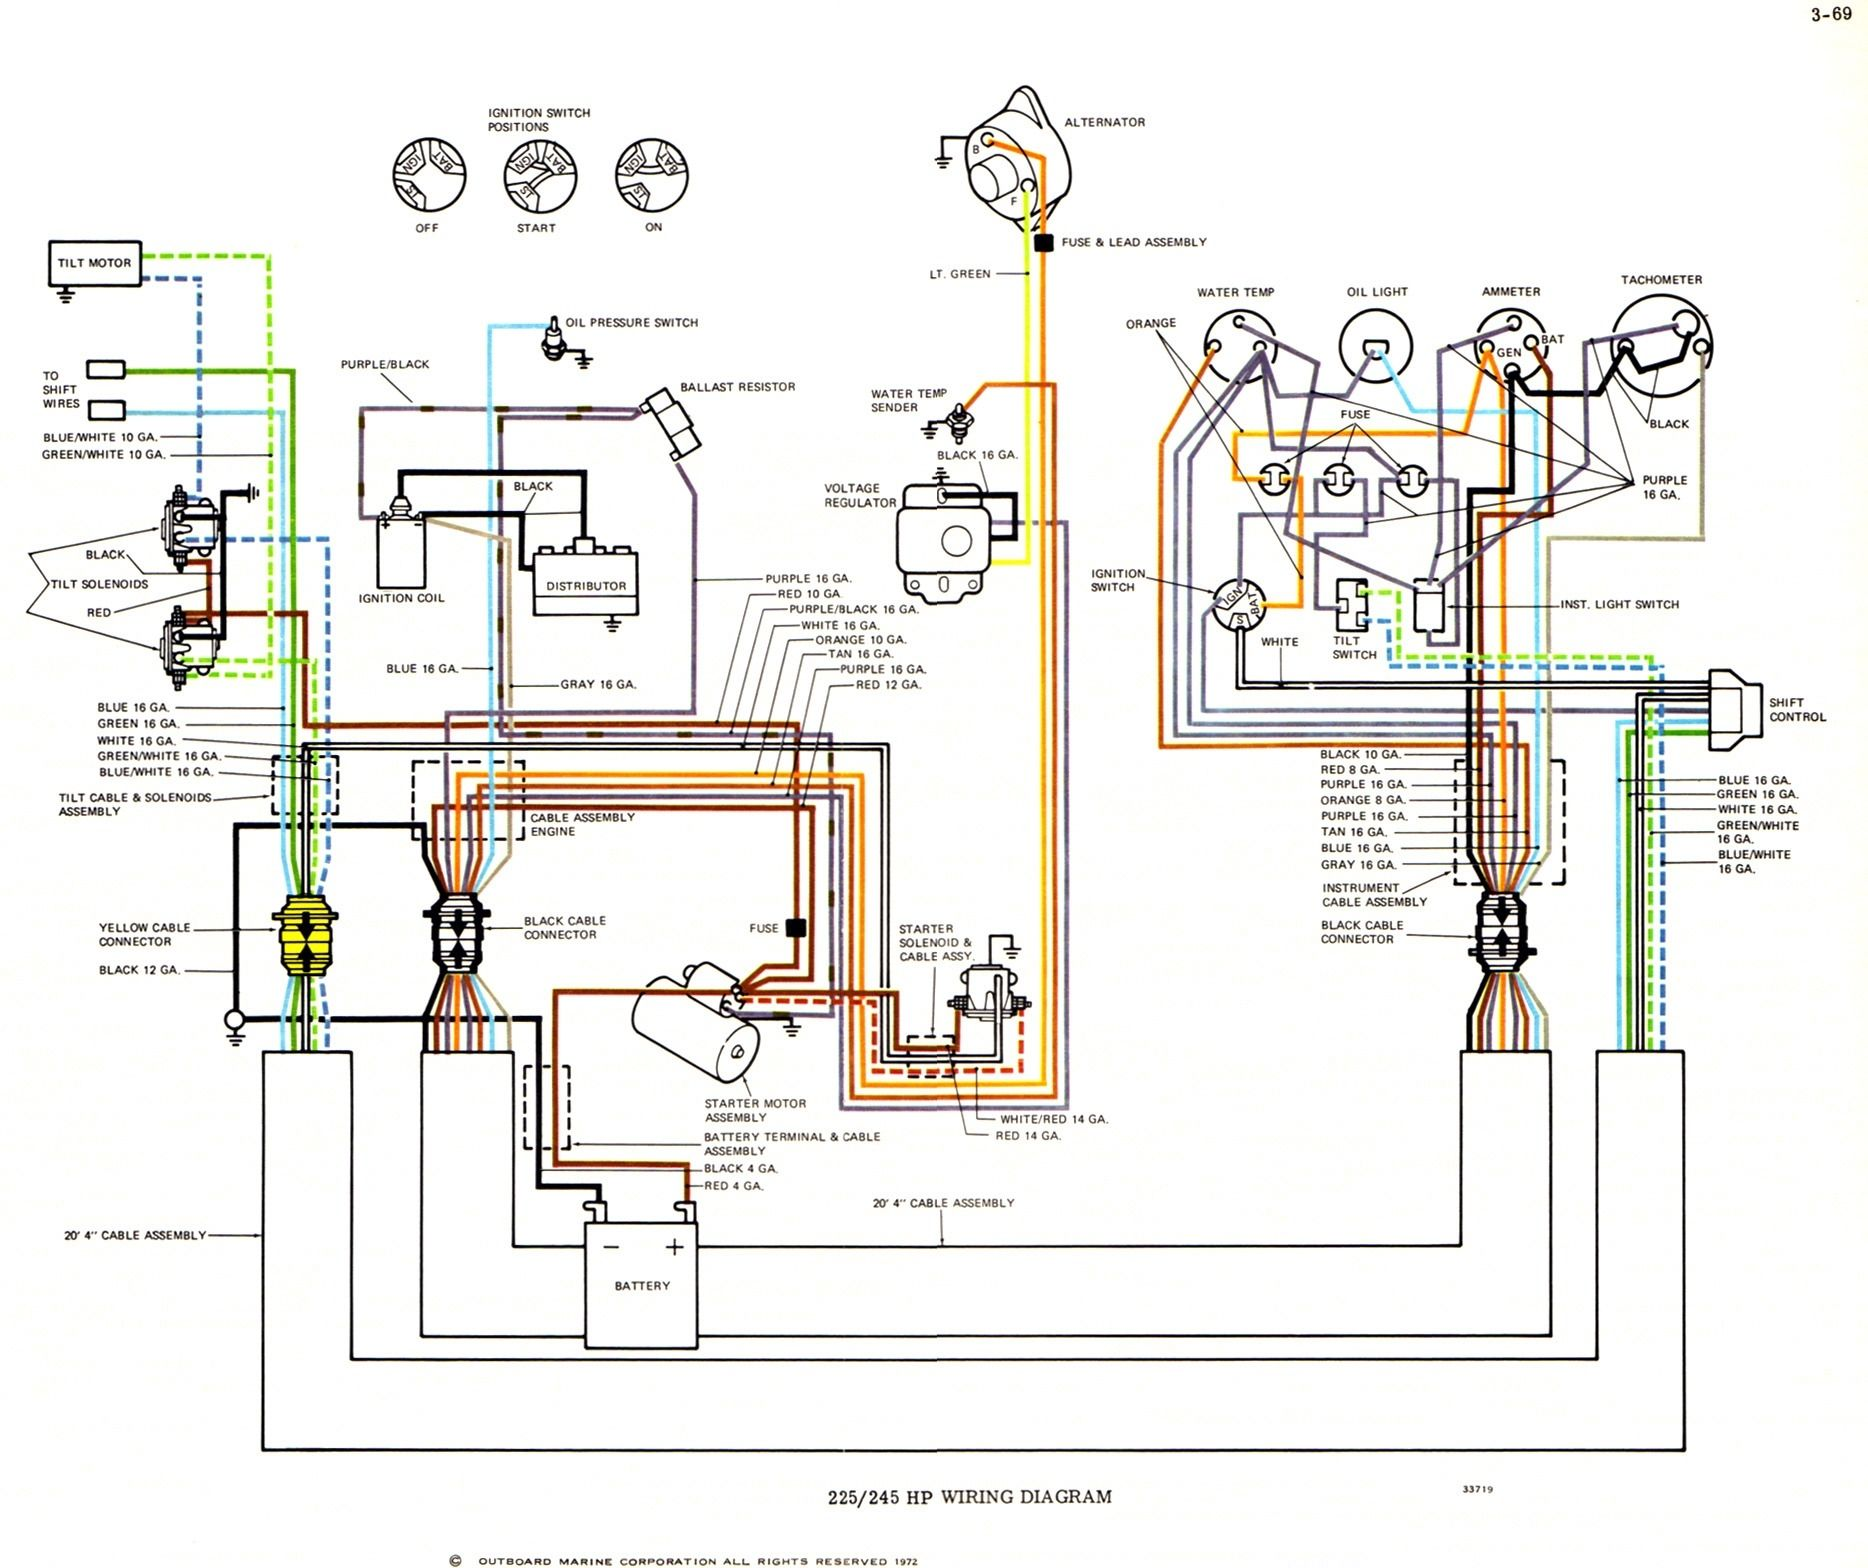 Yamaha Outboard Electrical Wiring Diagram Wiringdiagram Org Electrical Wiring Diagram Electrical Wiring Boat Wiring